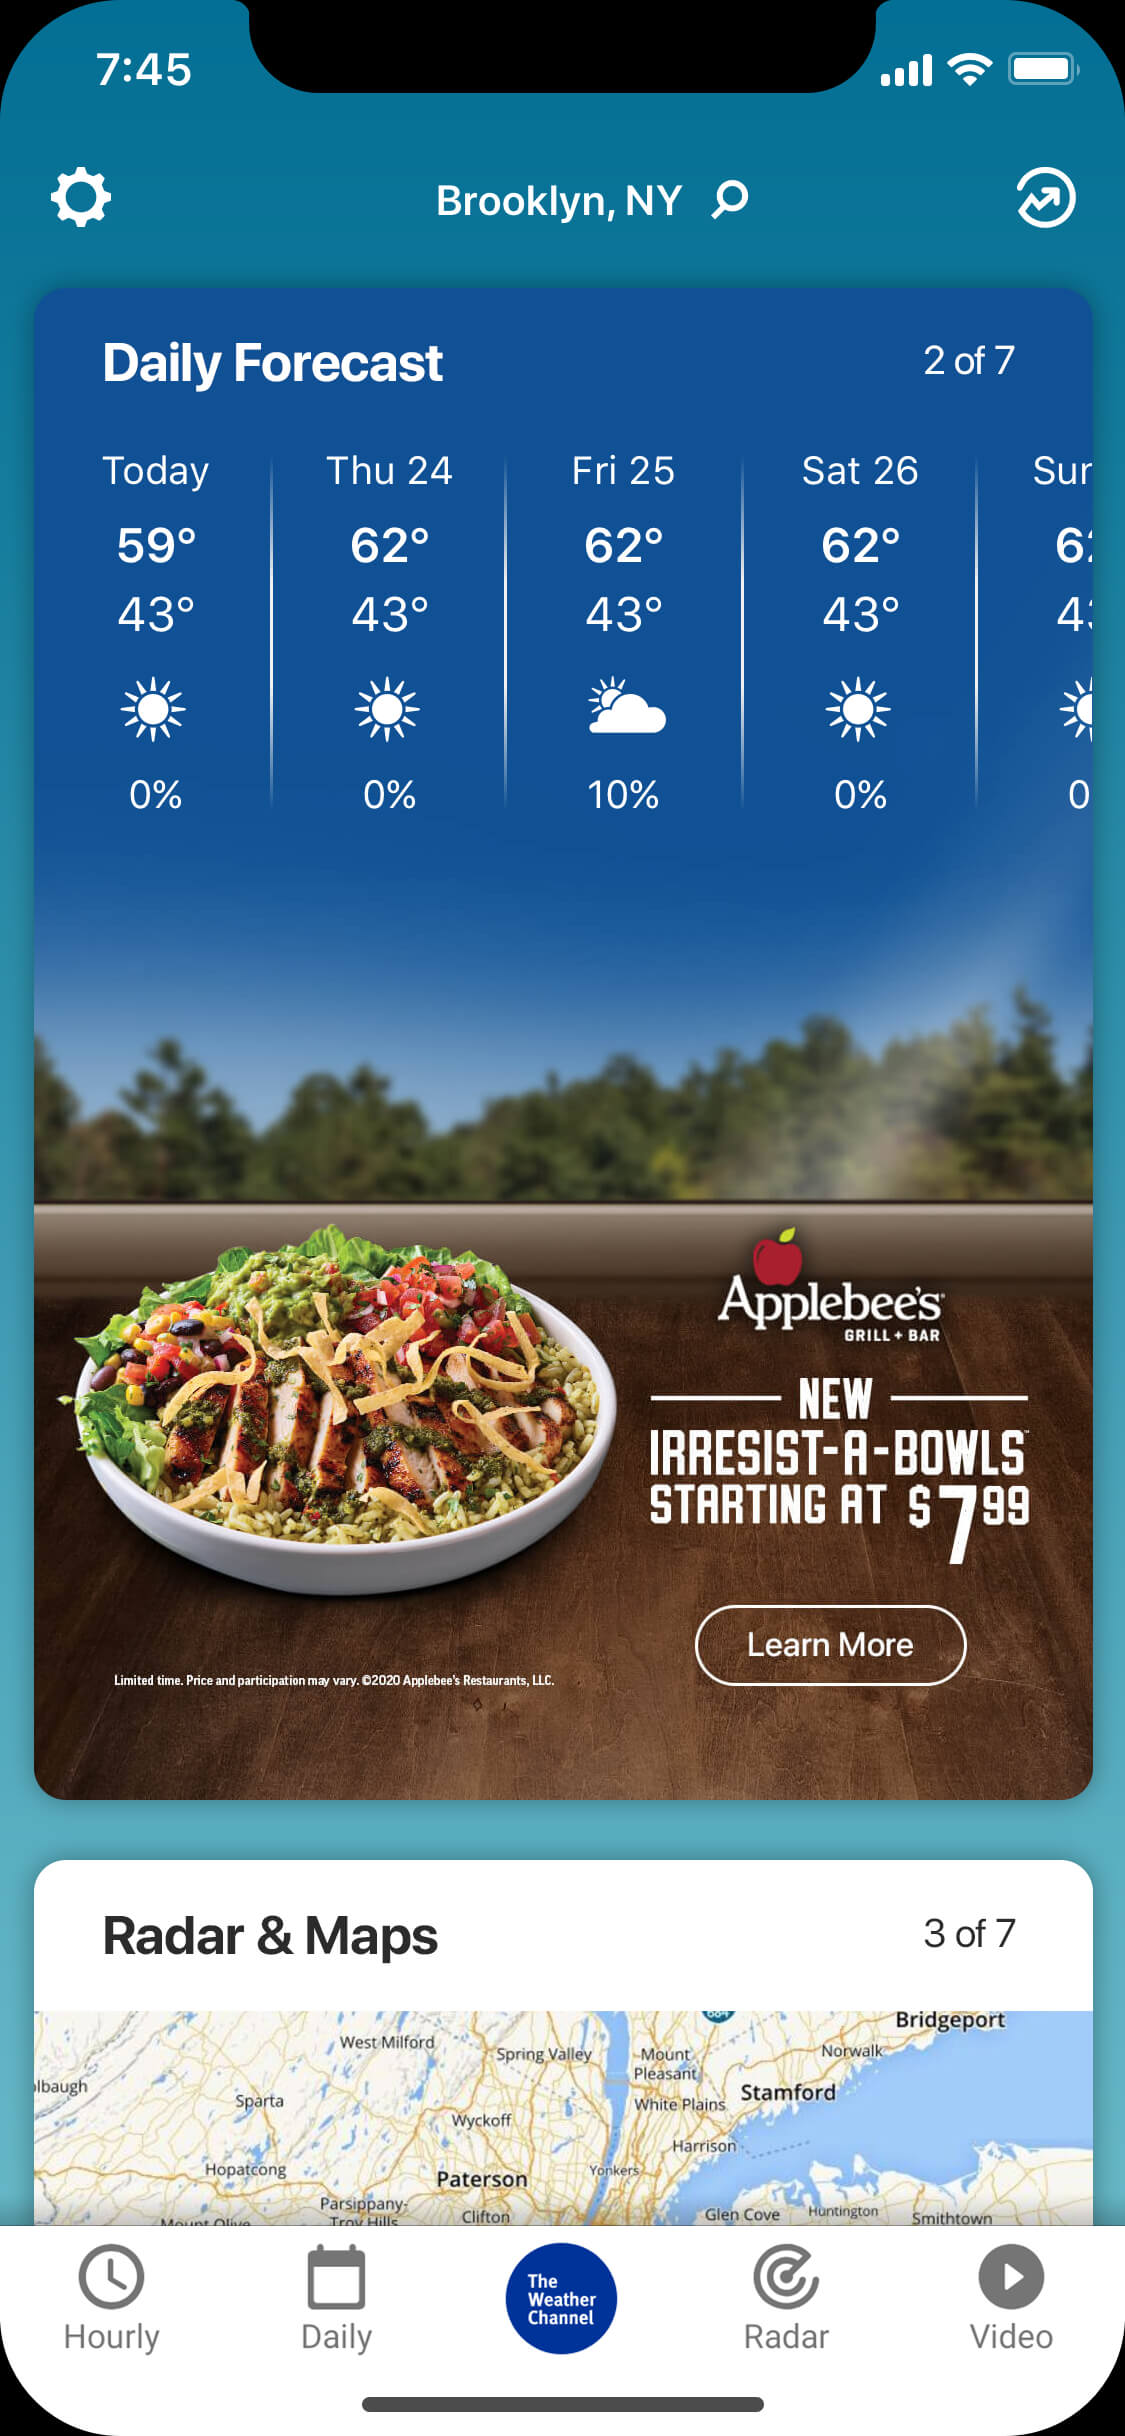 applebees-bowls-if_clear-day